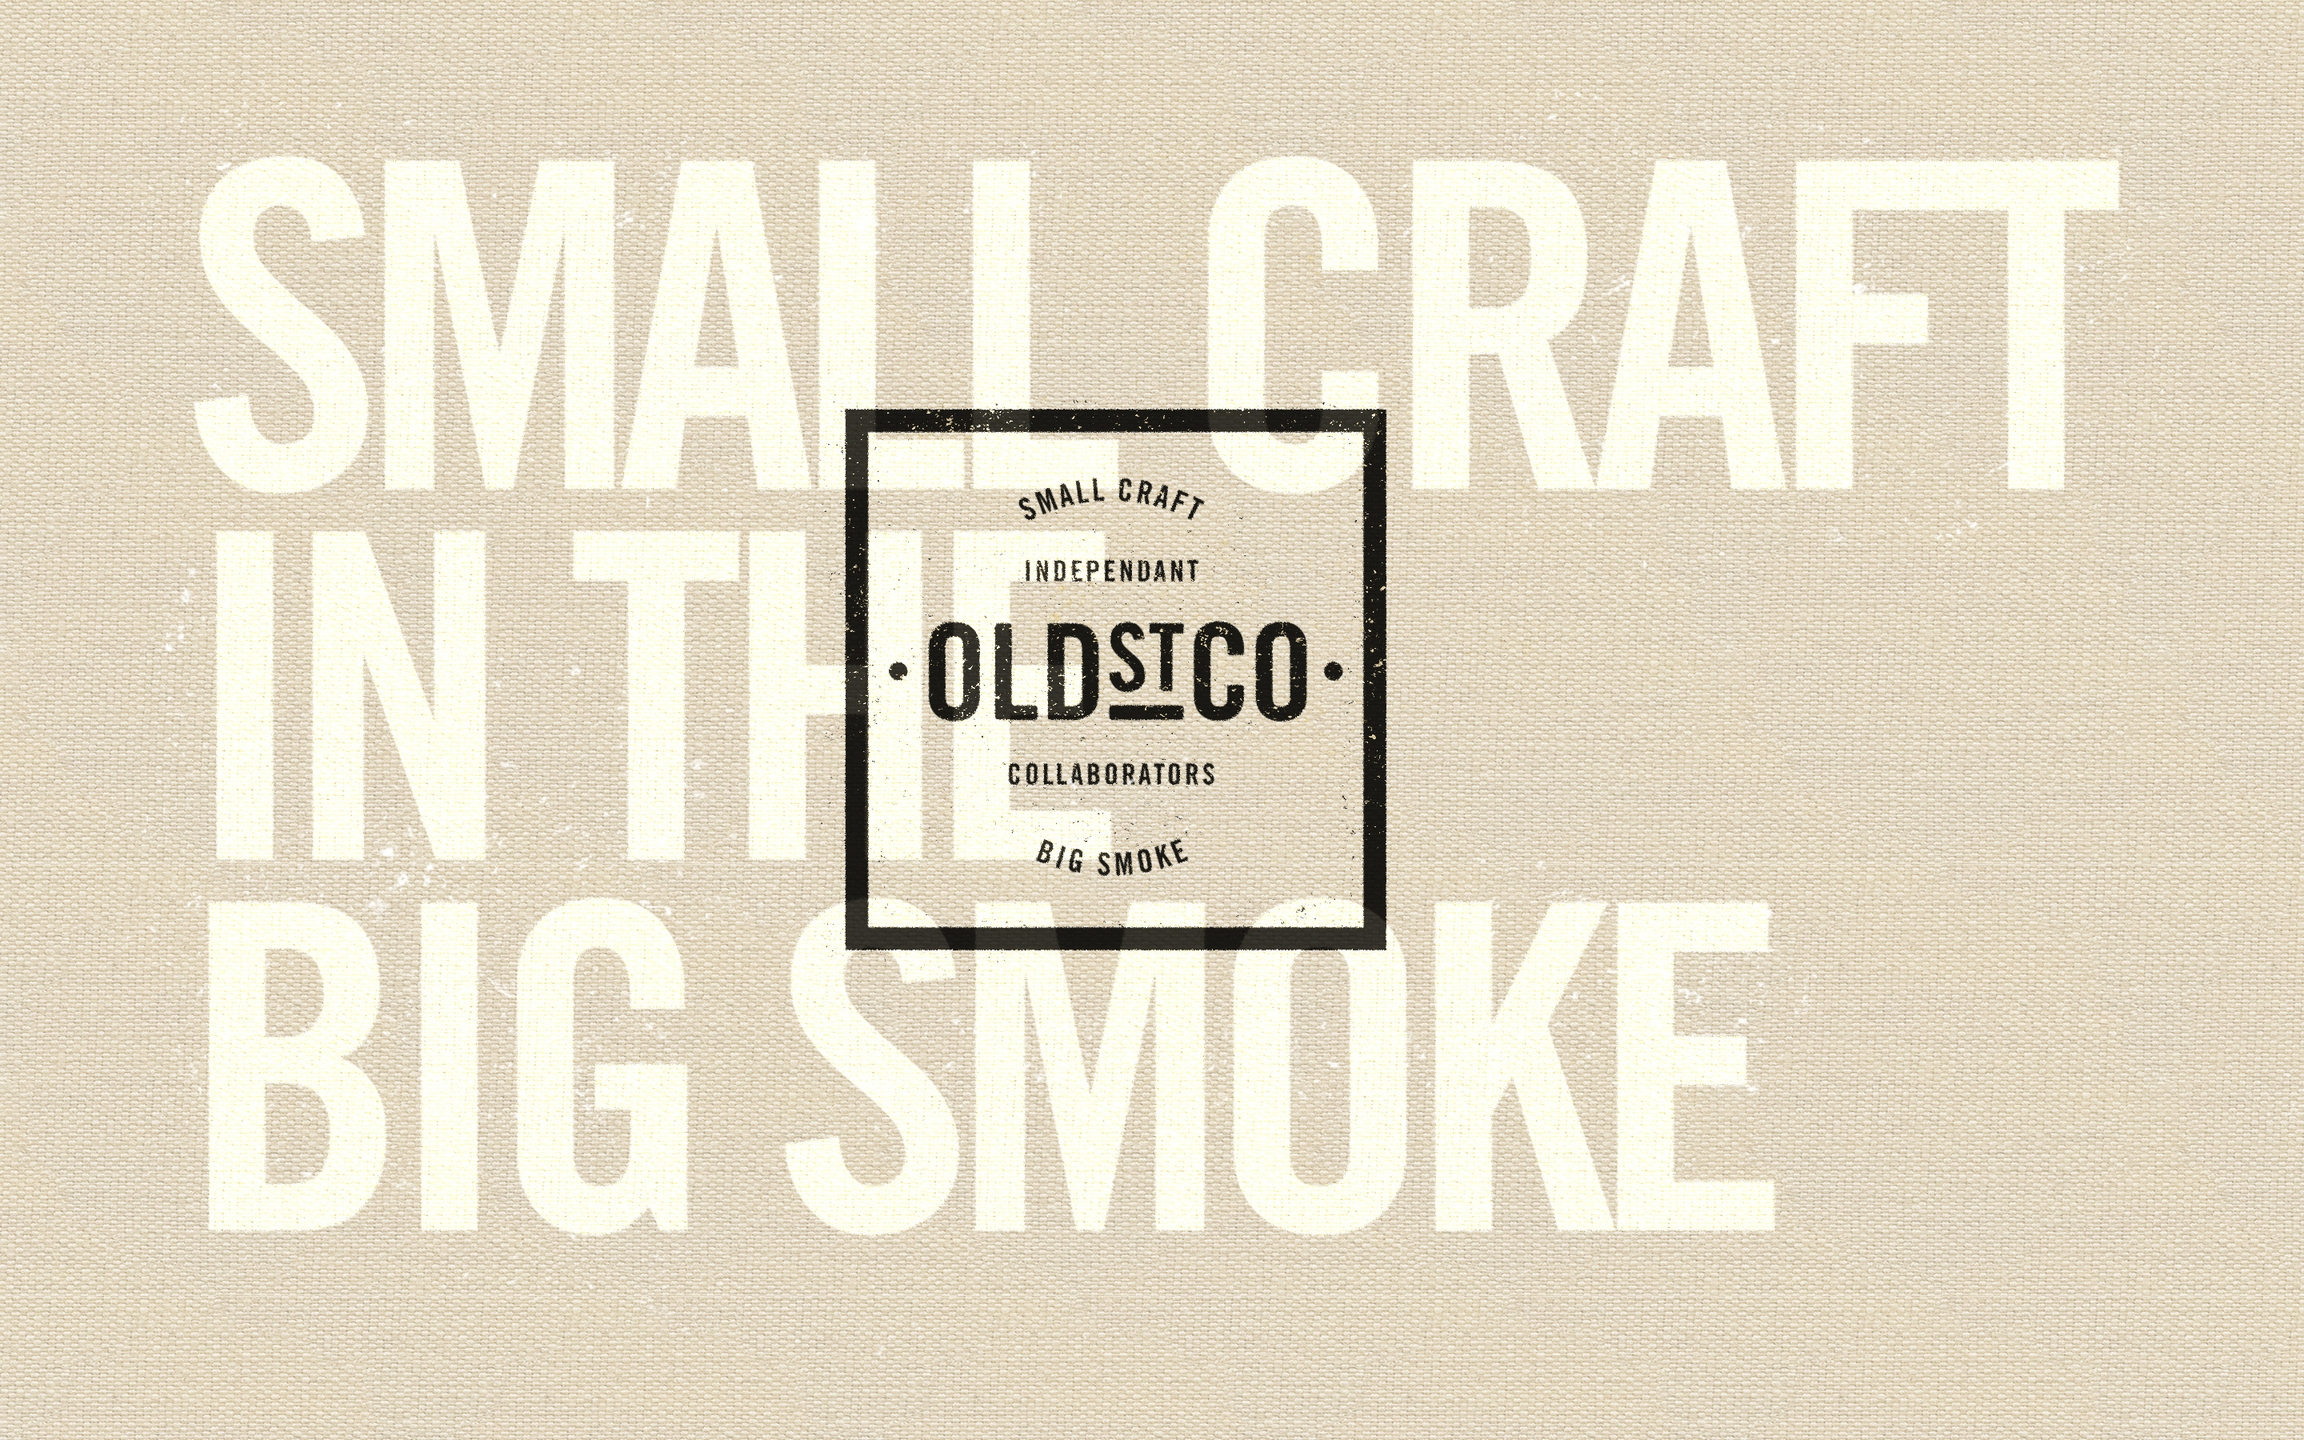 Old Street Co (@oldstco) Cover Image